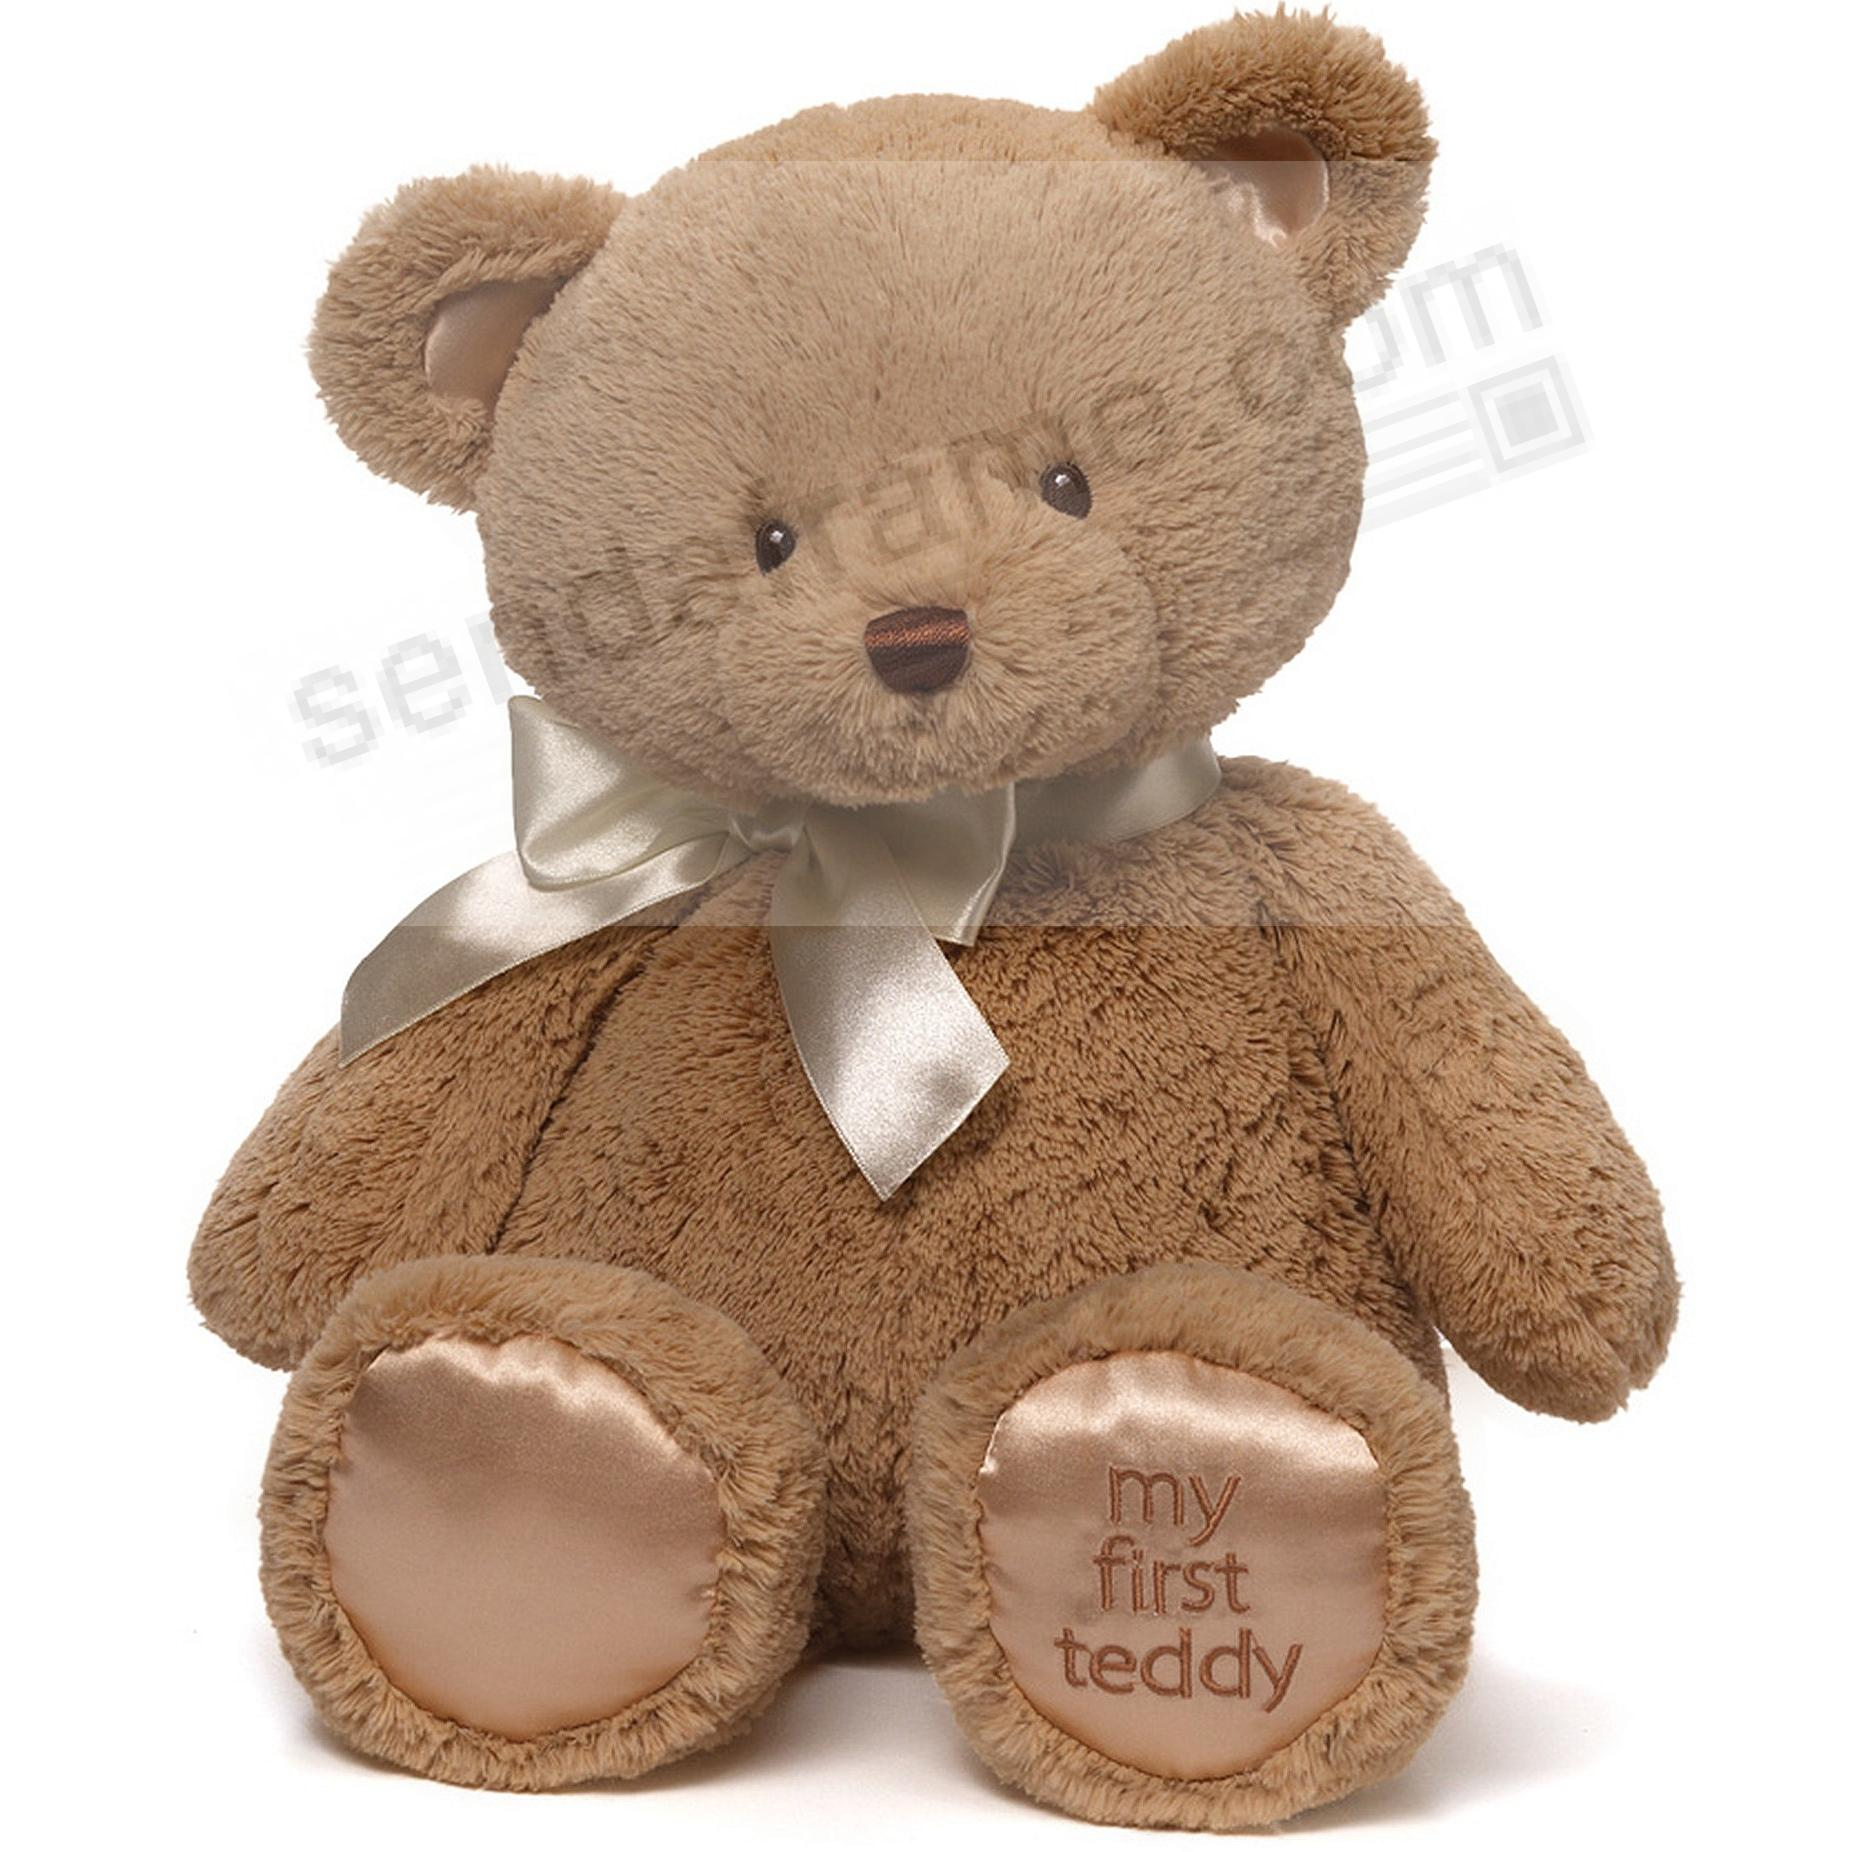 MY FIRST TEDDY plush toy bear by Gund®